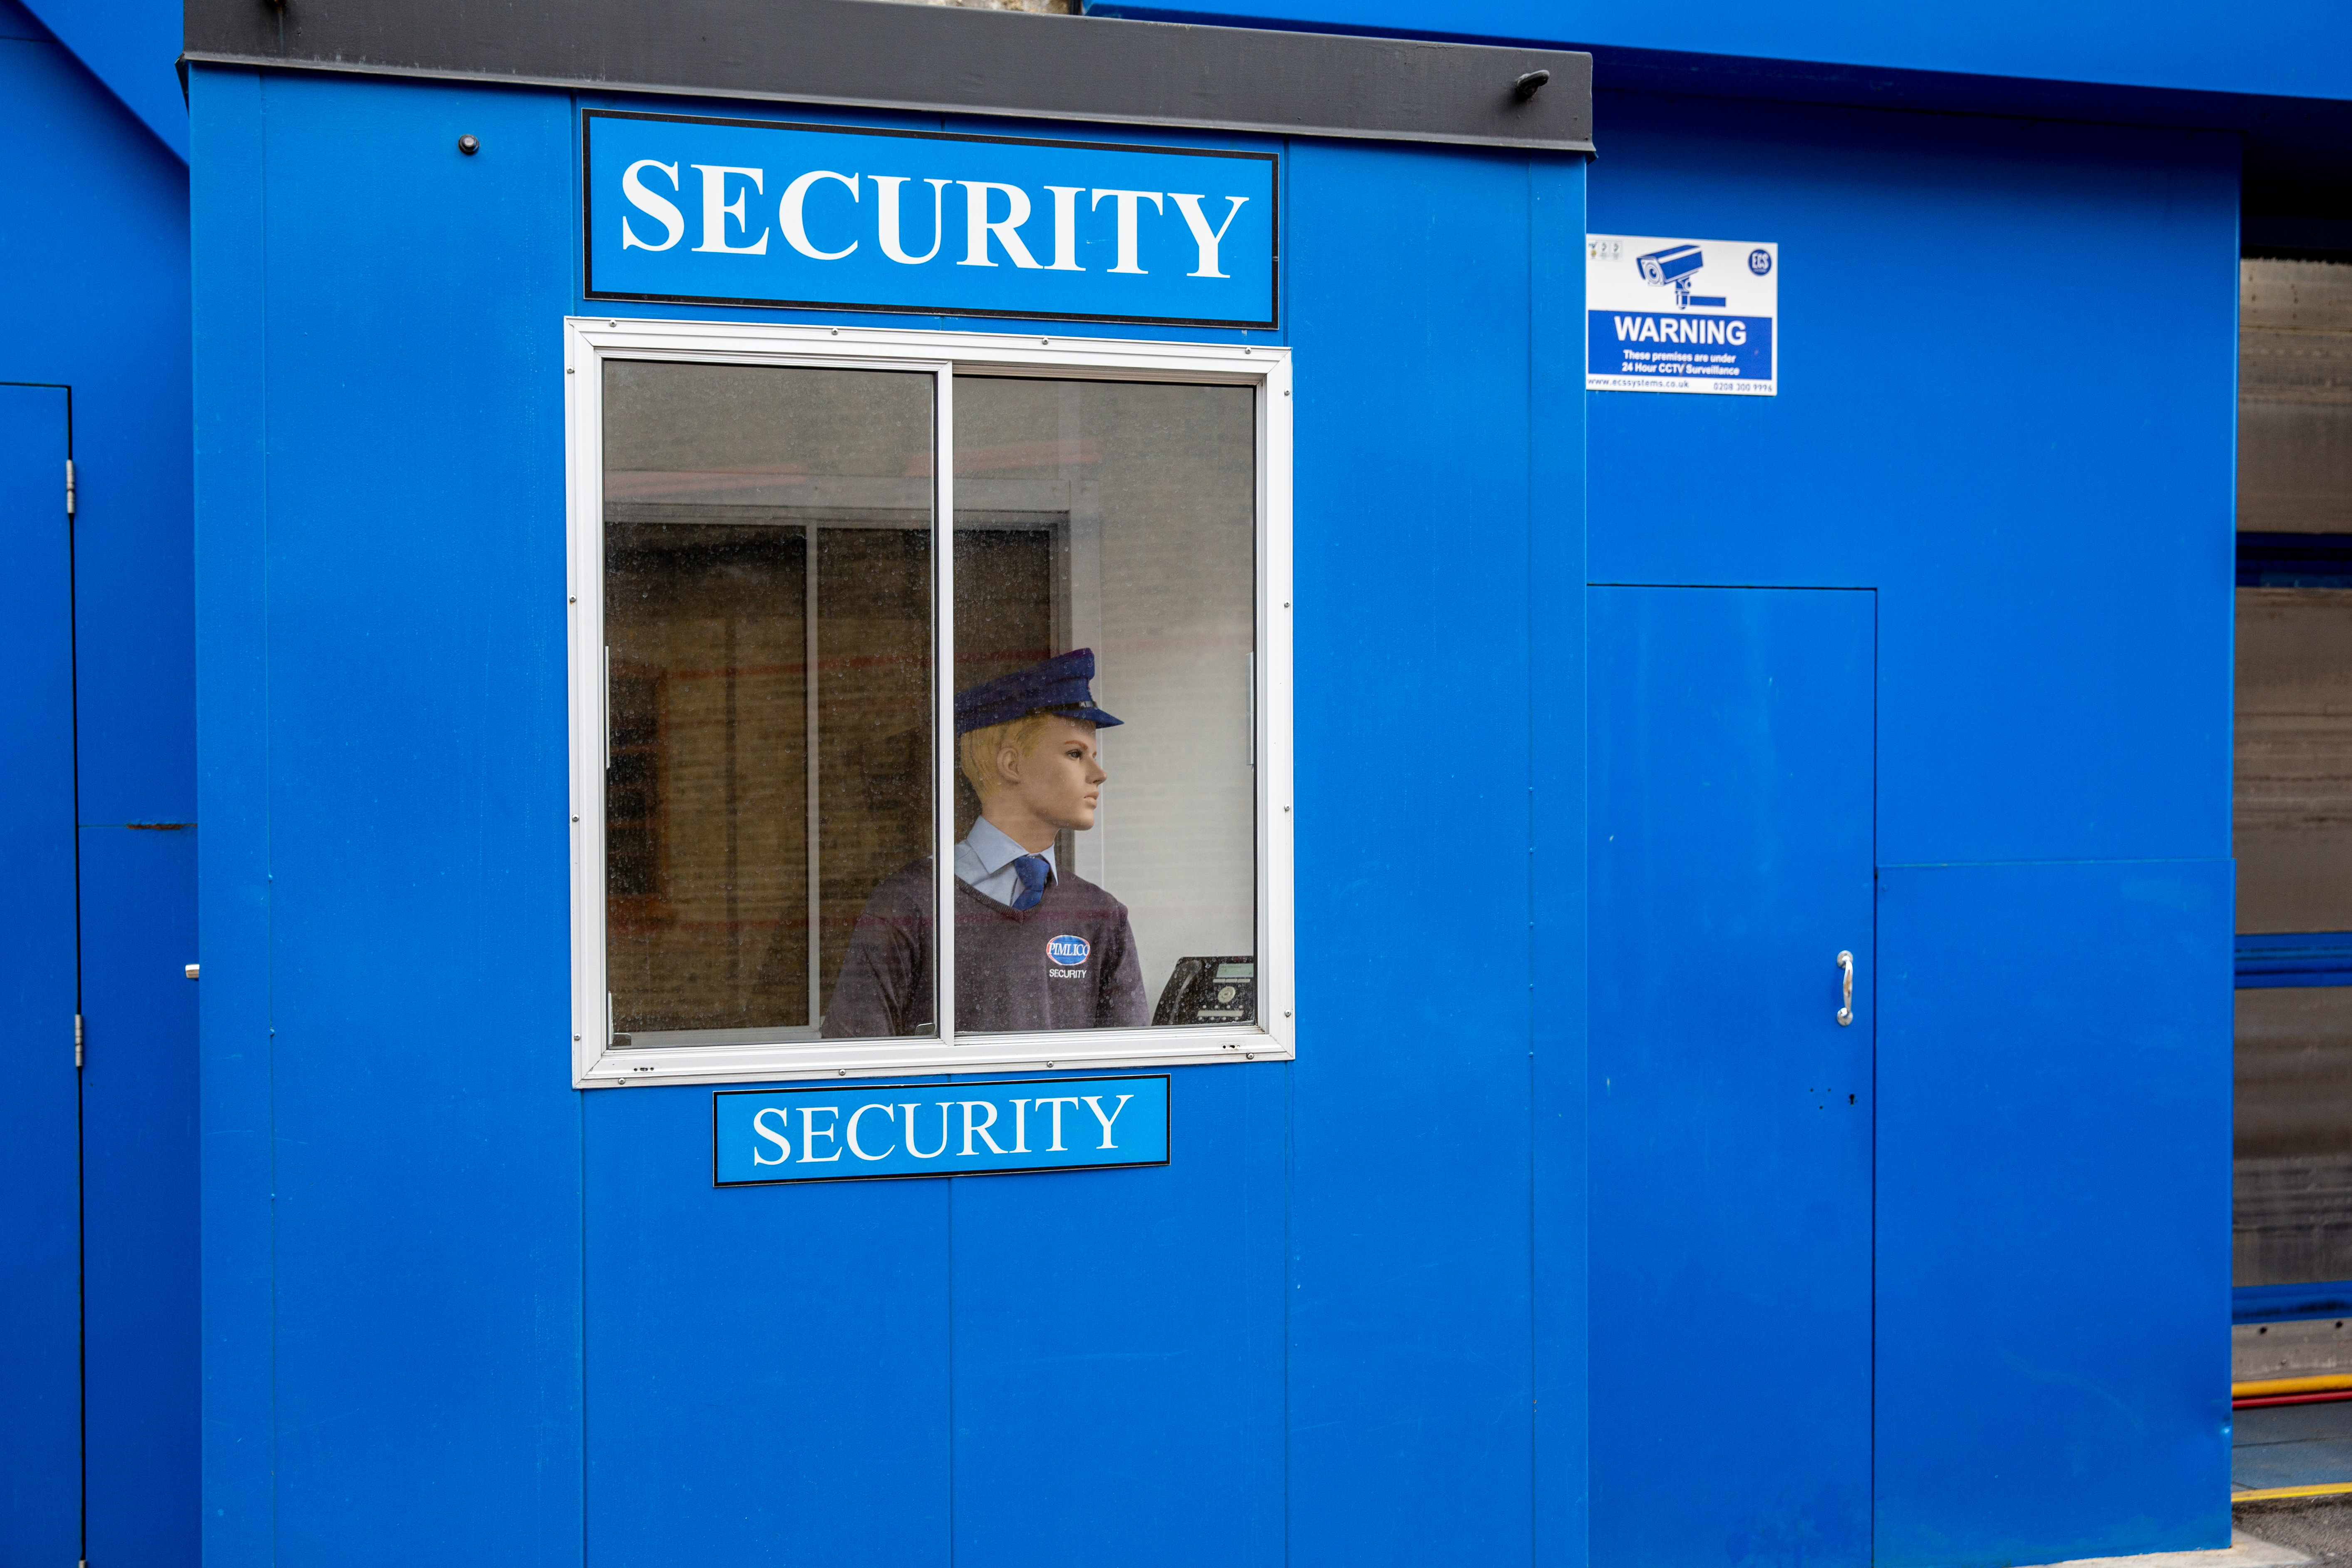 <p>A mannequin security man watches a commercial�premises�in central London on April 29, 2021. (Photo by Dominika Zarzycka/Sipa USA)</p>